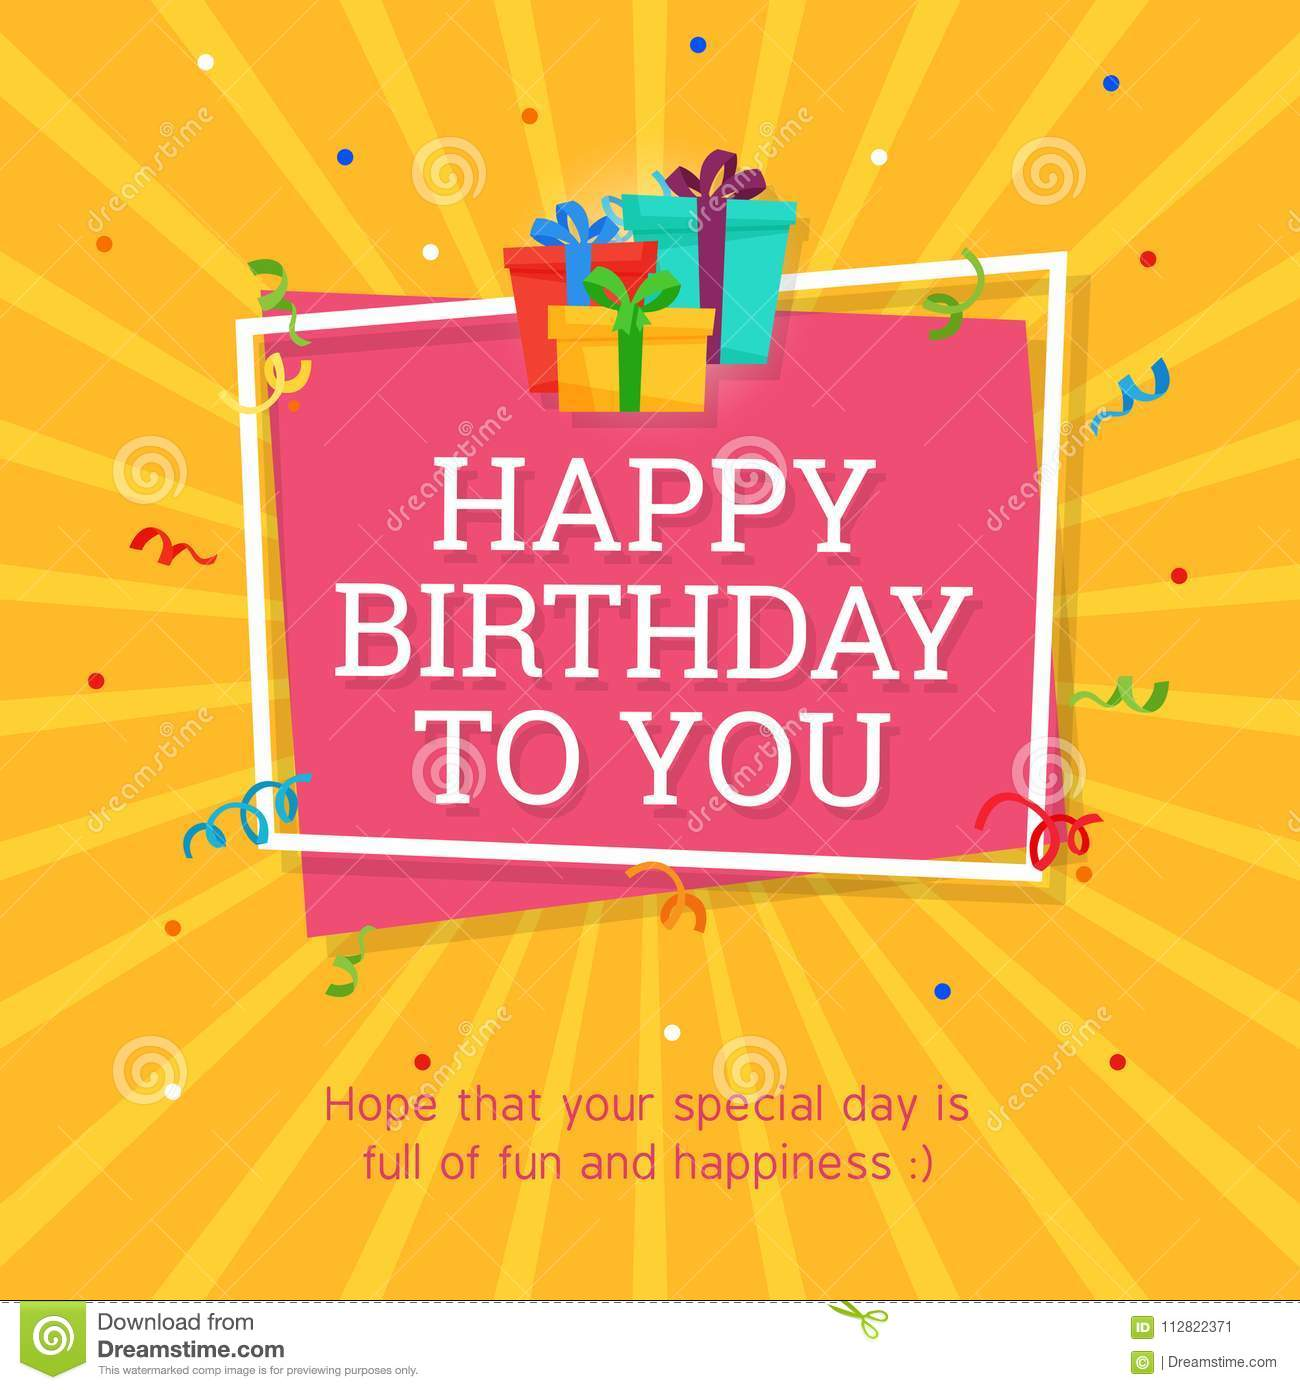 Happy Birthday Background Template with Gift Box Illustration.